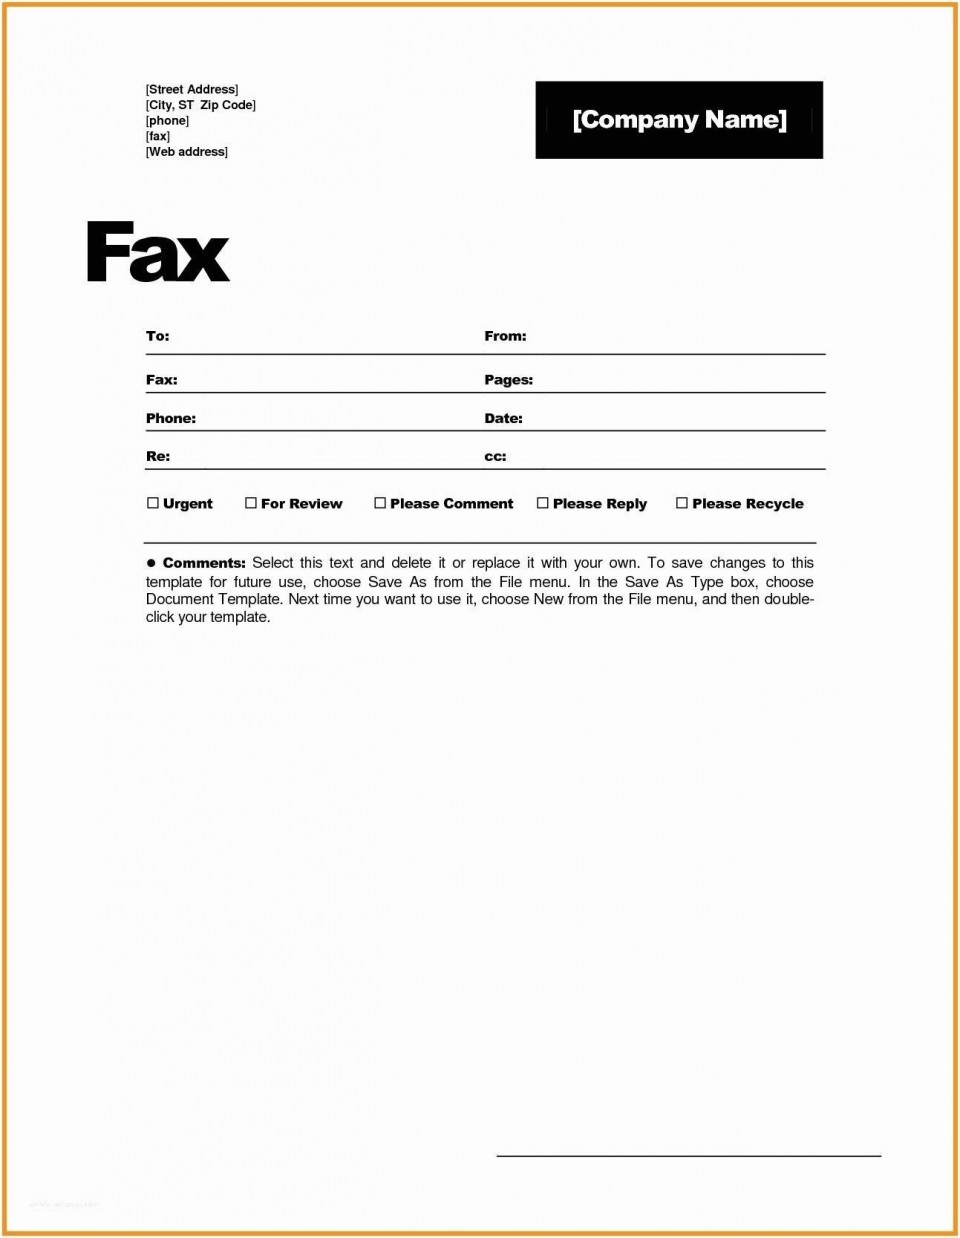 001 Magnificent General Fax Cover Letter Template Photo  Sheet Word Confidential Example960